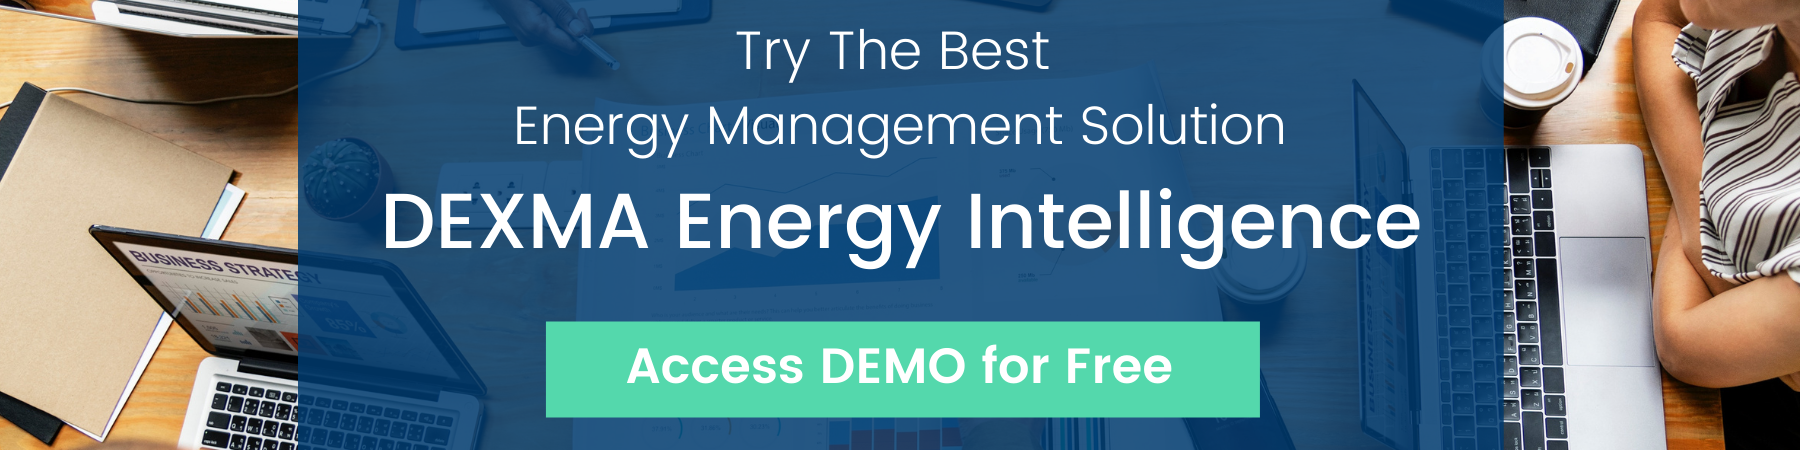 DEXCell free trial - energy management software